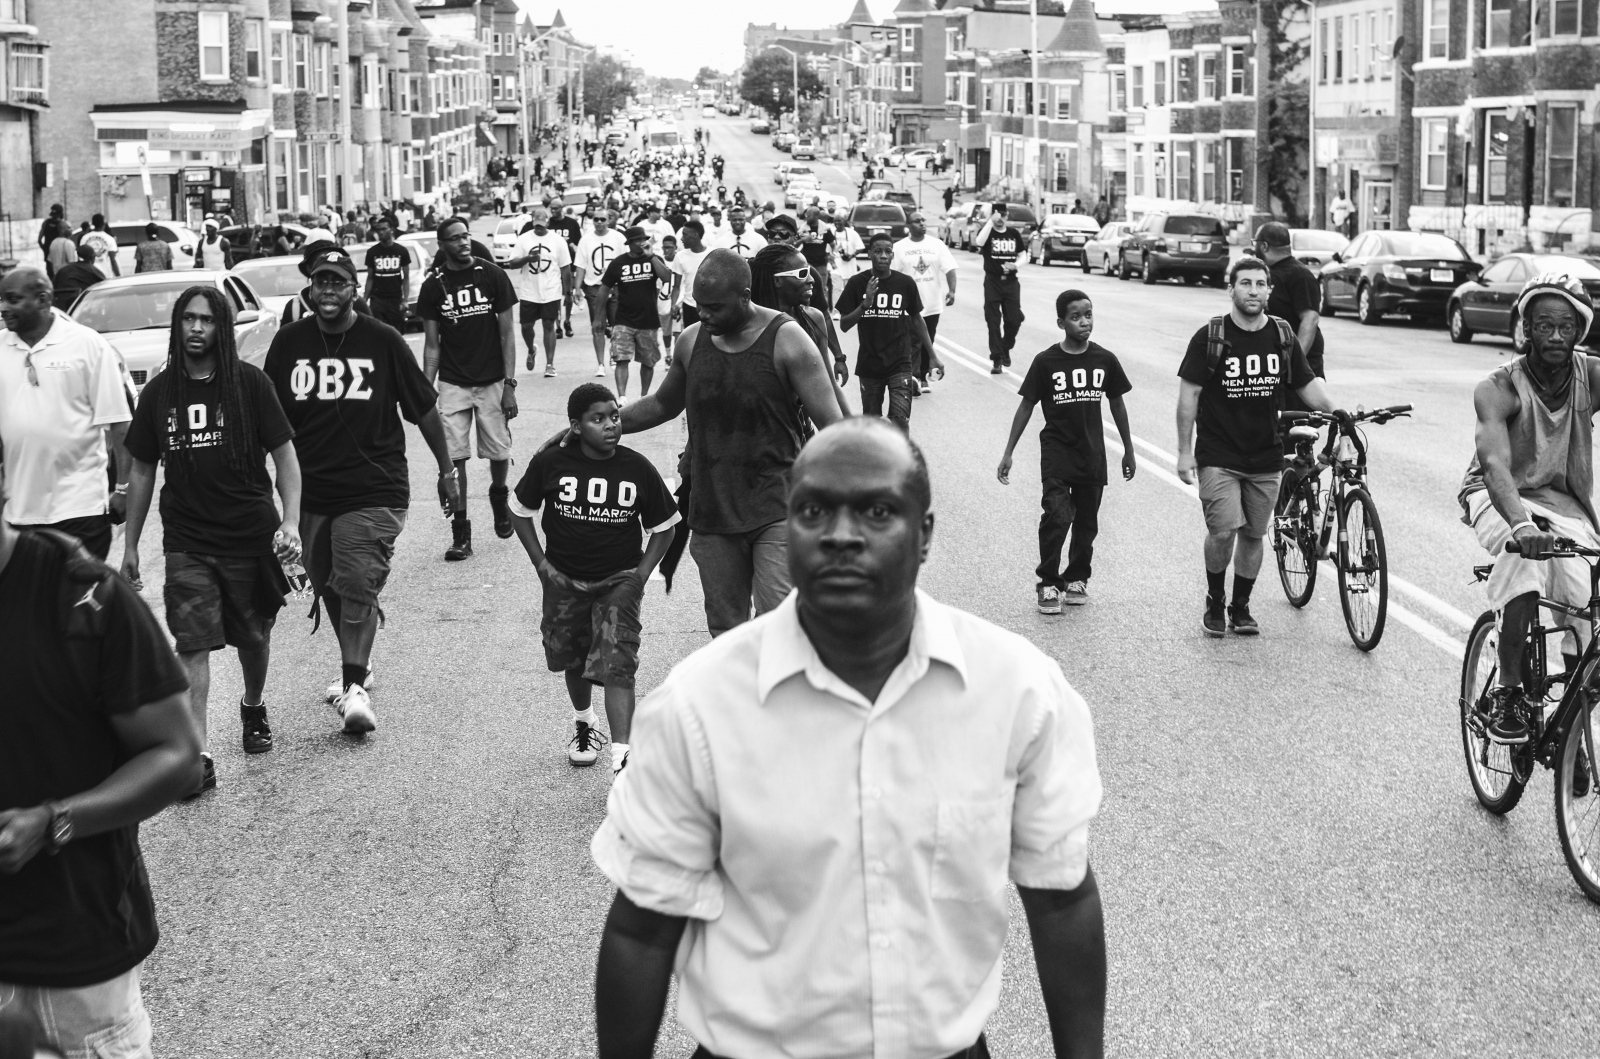 In response to the spike in homicides in 2013, Baltimore City Councilman Brandon Scott and activist Munir Bahar organized the 300 Man March, which encouraged men of all ages to walk at night through some of Baltimore's most violent neighborhoods.